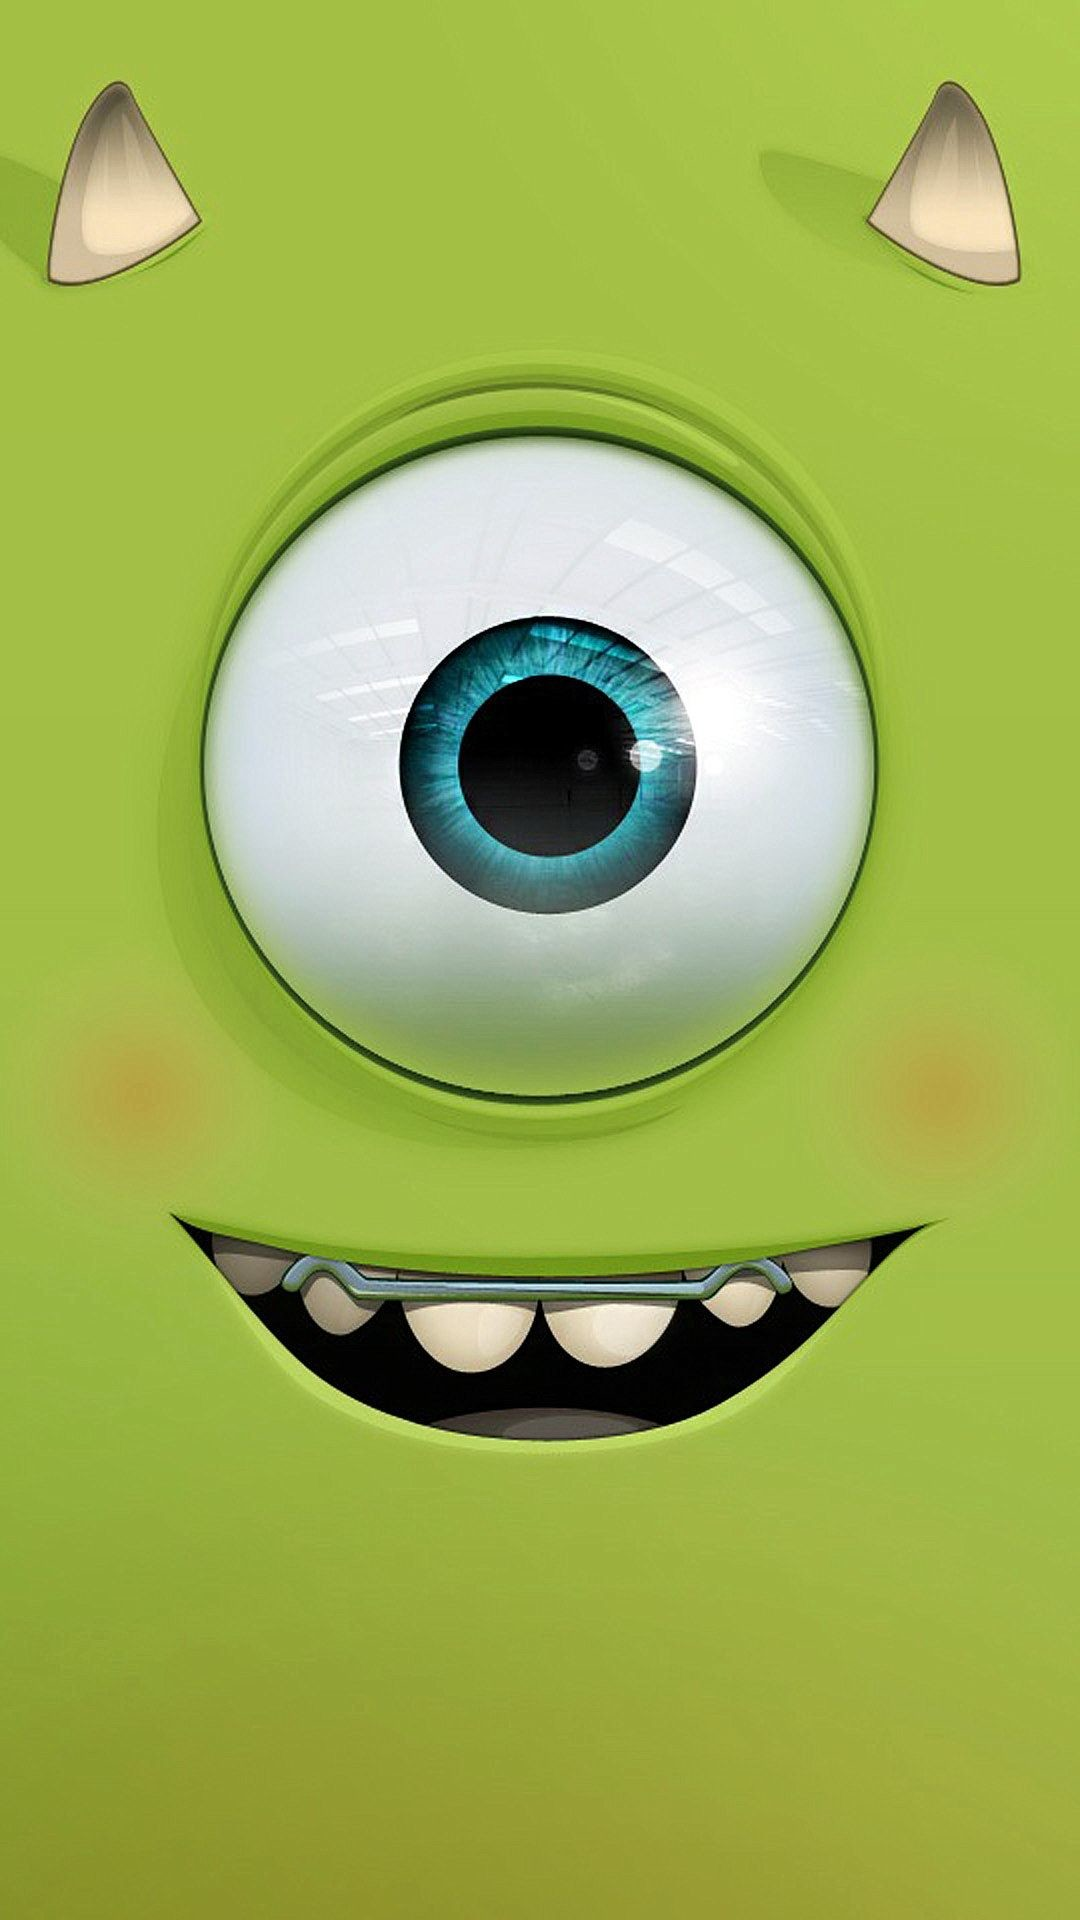 Res: 1080x1920, Funny cutie monster inc. - Tap to see more cute cartoon wallpapers! -  @mobile9